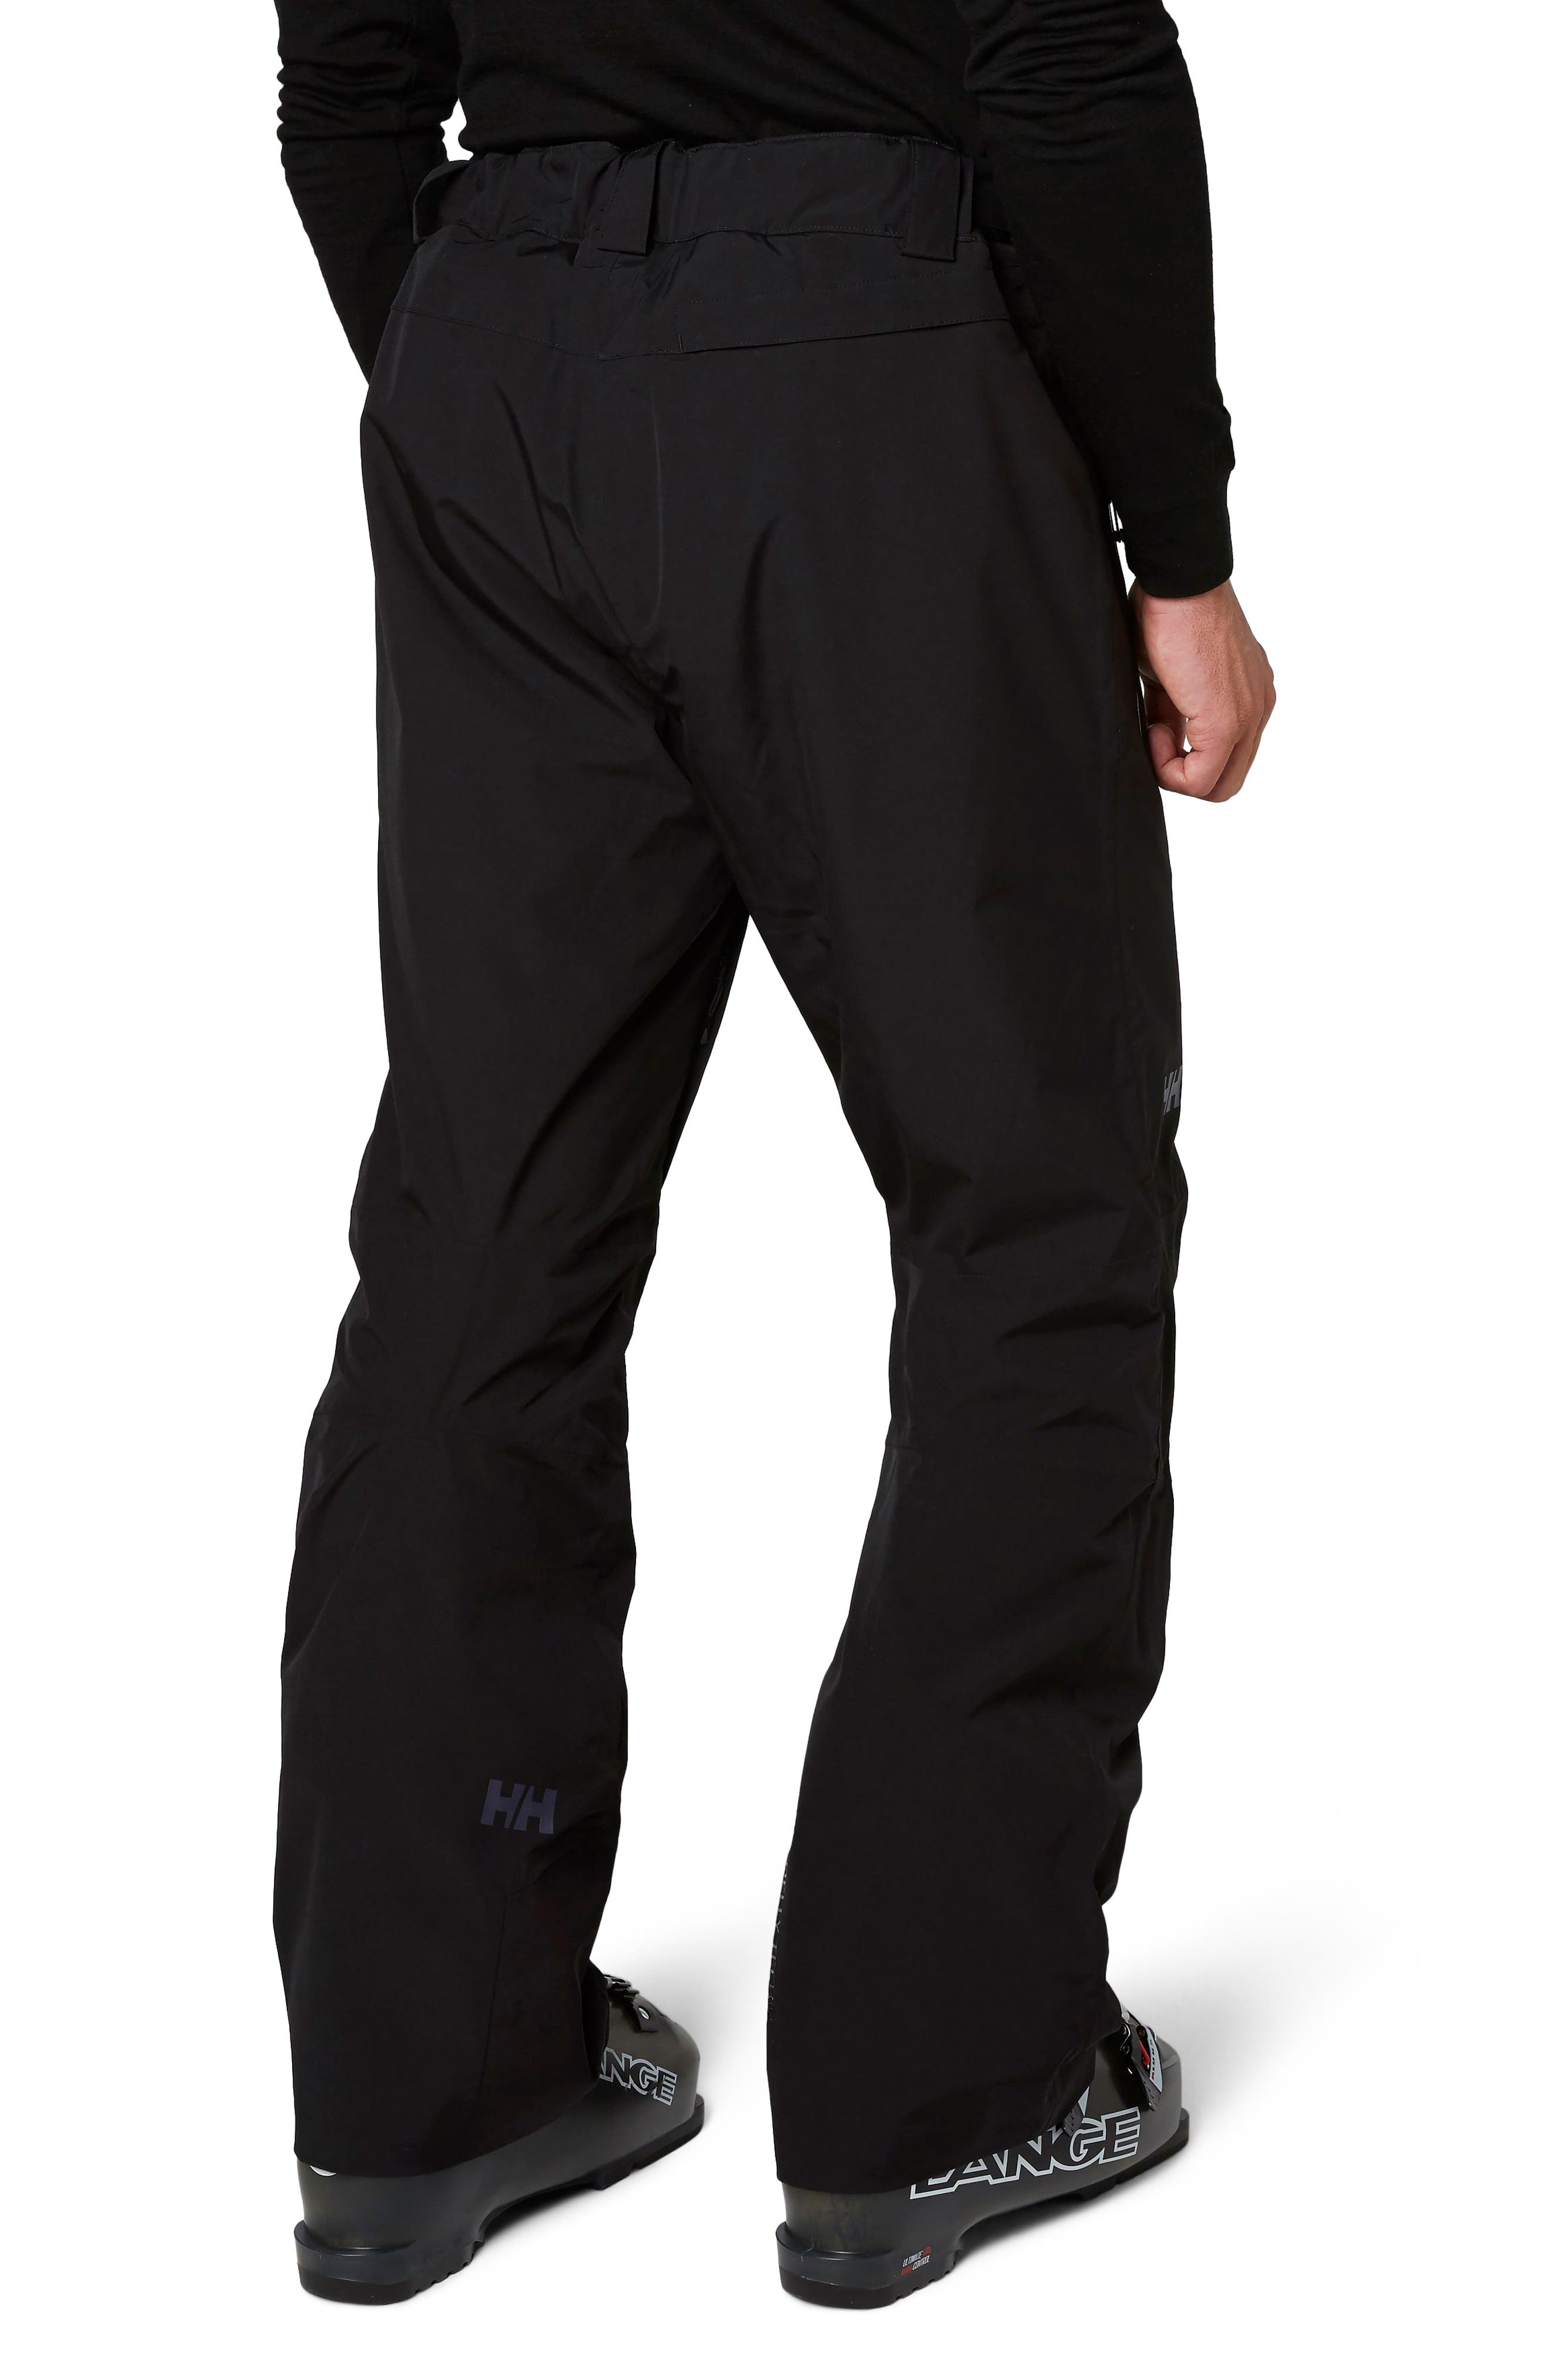 Legendary Waterproof PrimaLoft<sup>®</sup> Insulated Snow Pants,                             Alternate thumbnail 2, color,                             Black